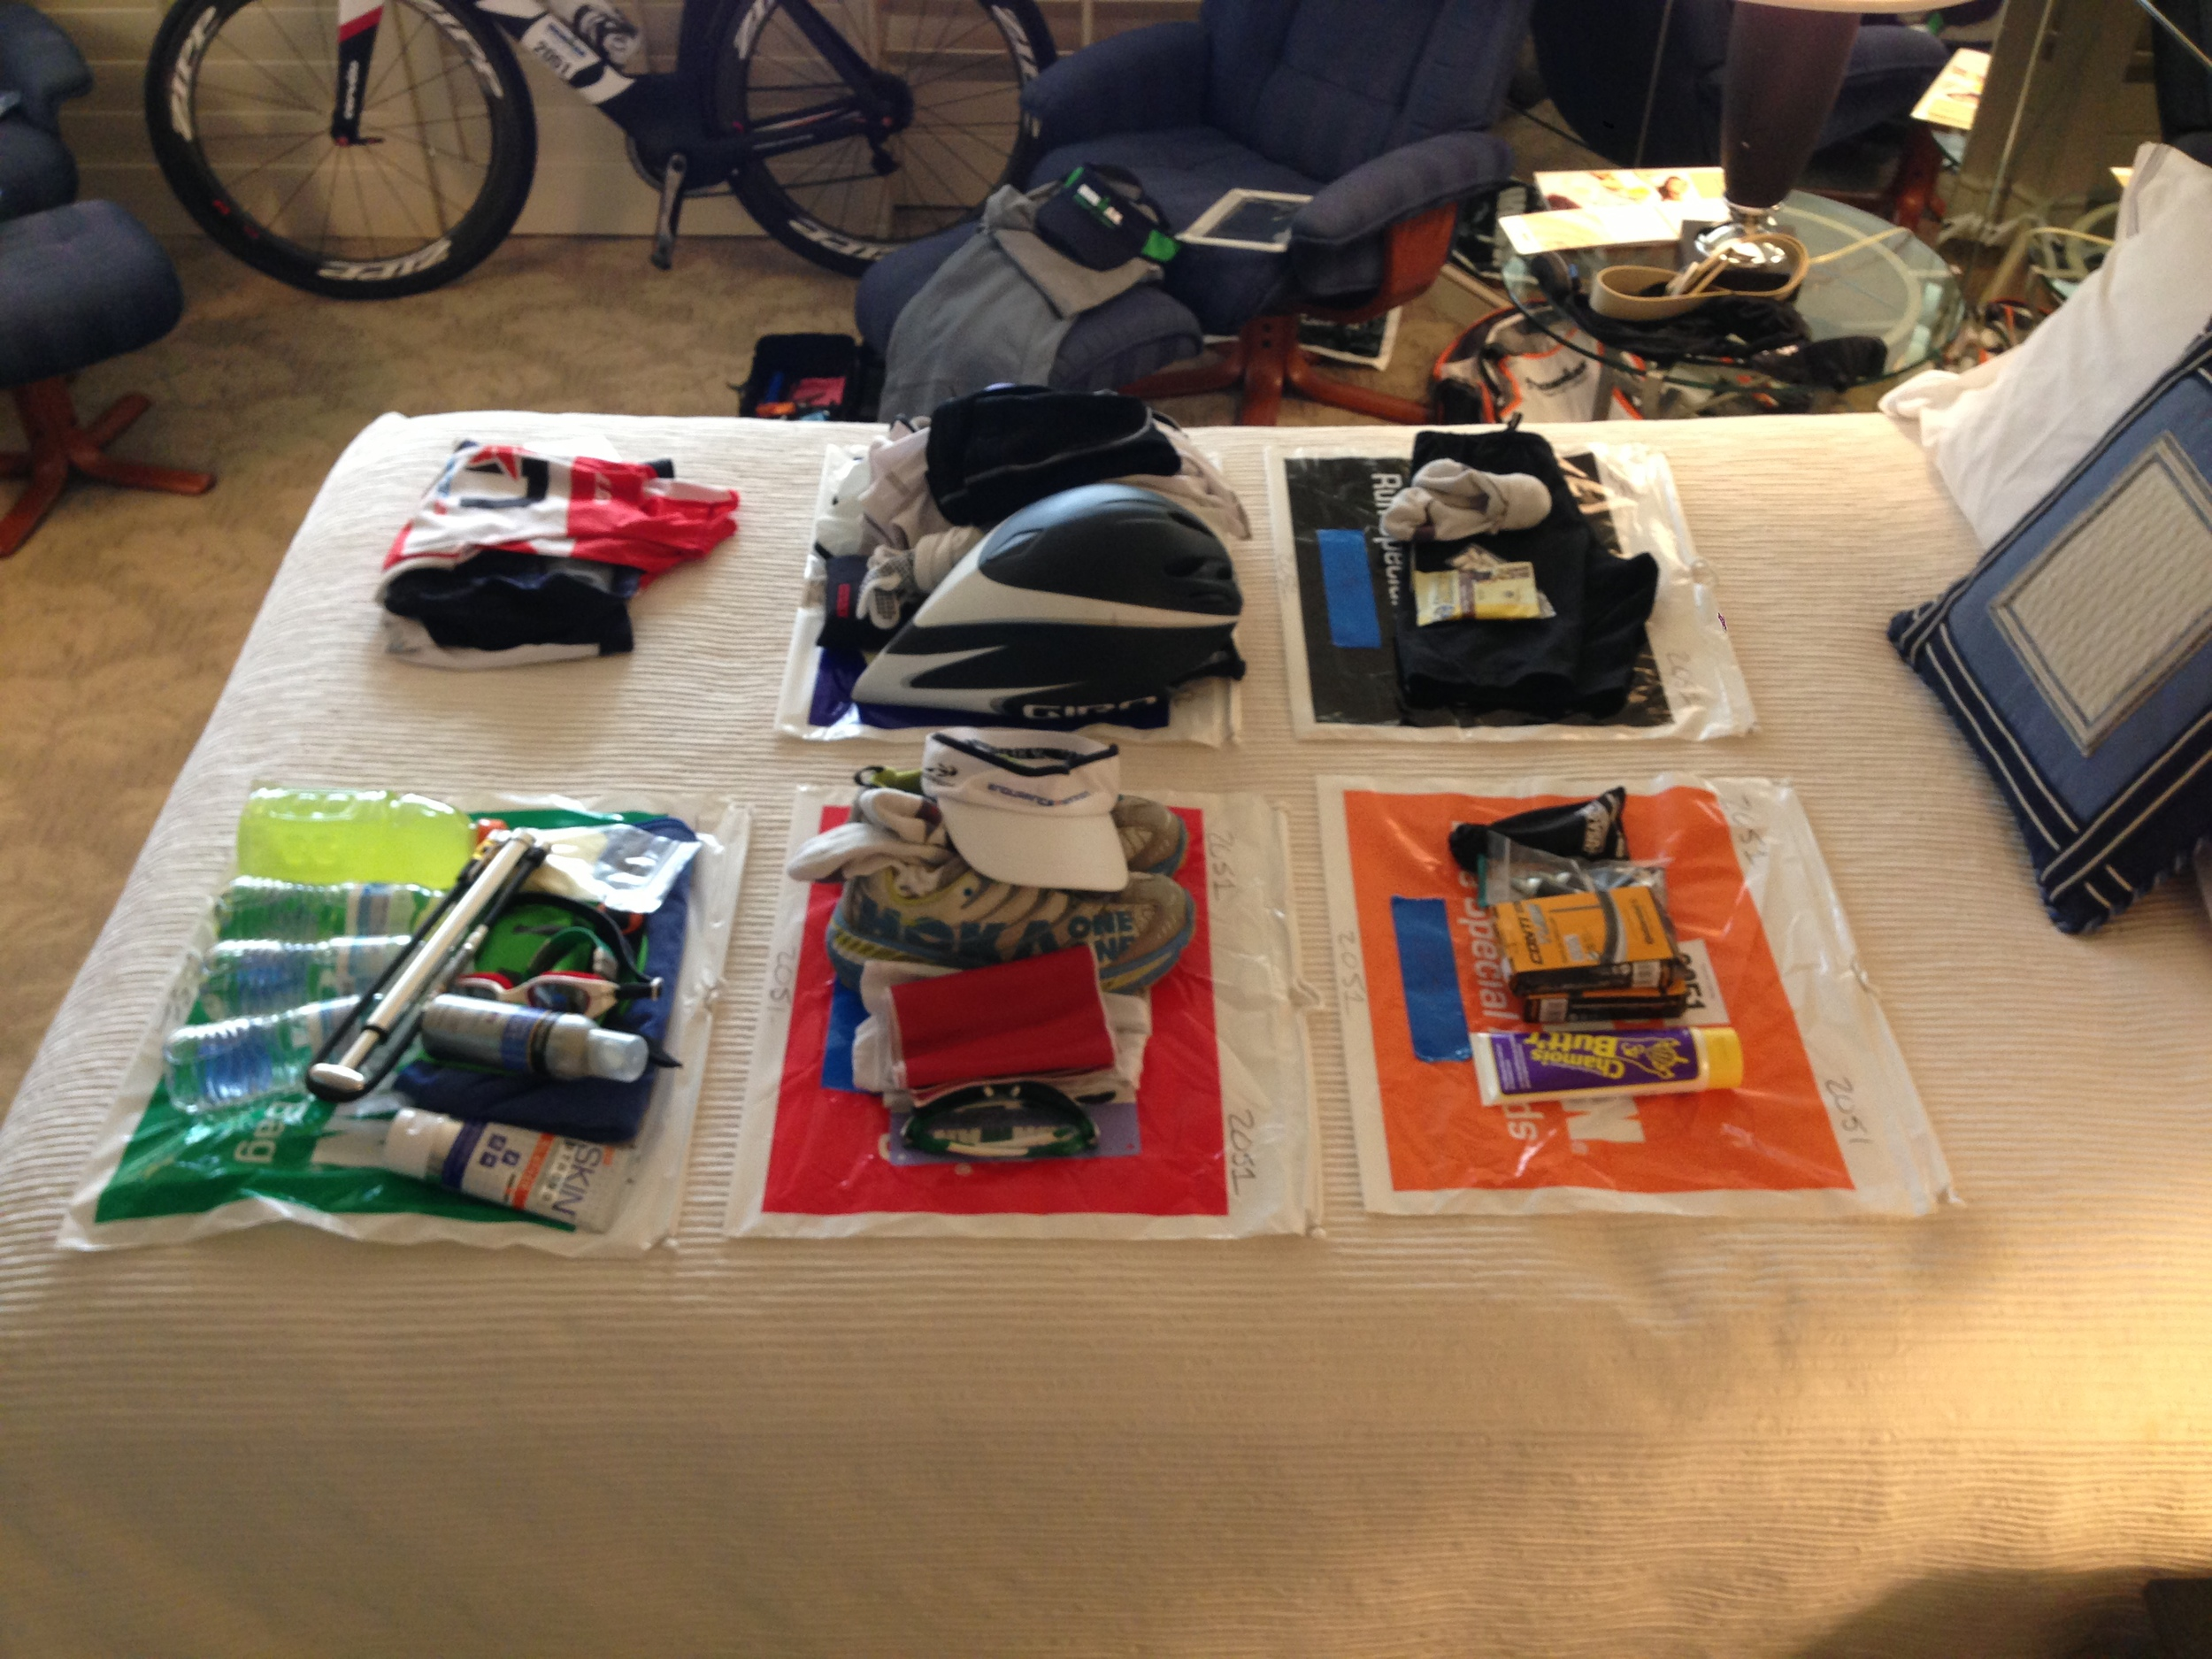 I stack everything on top first to make last minute checks in the morning easier before departing for the race.